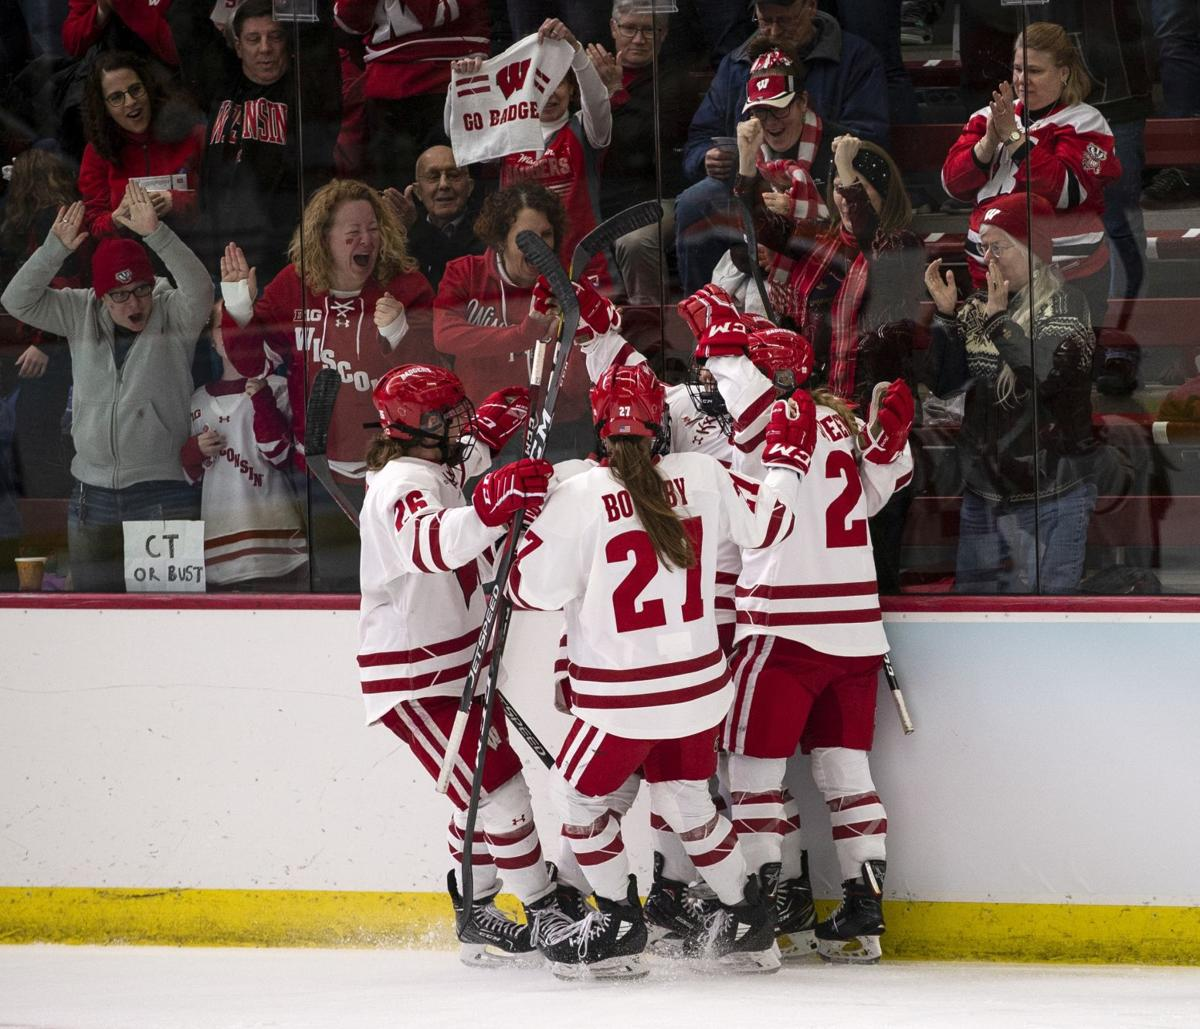 Badgers women's hockey vs. Syracuse